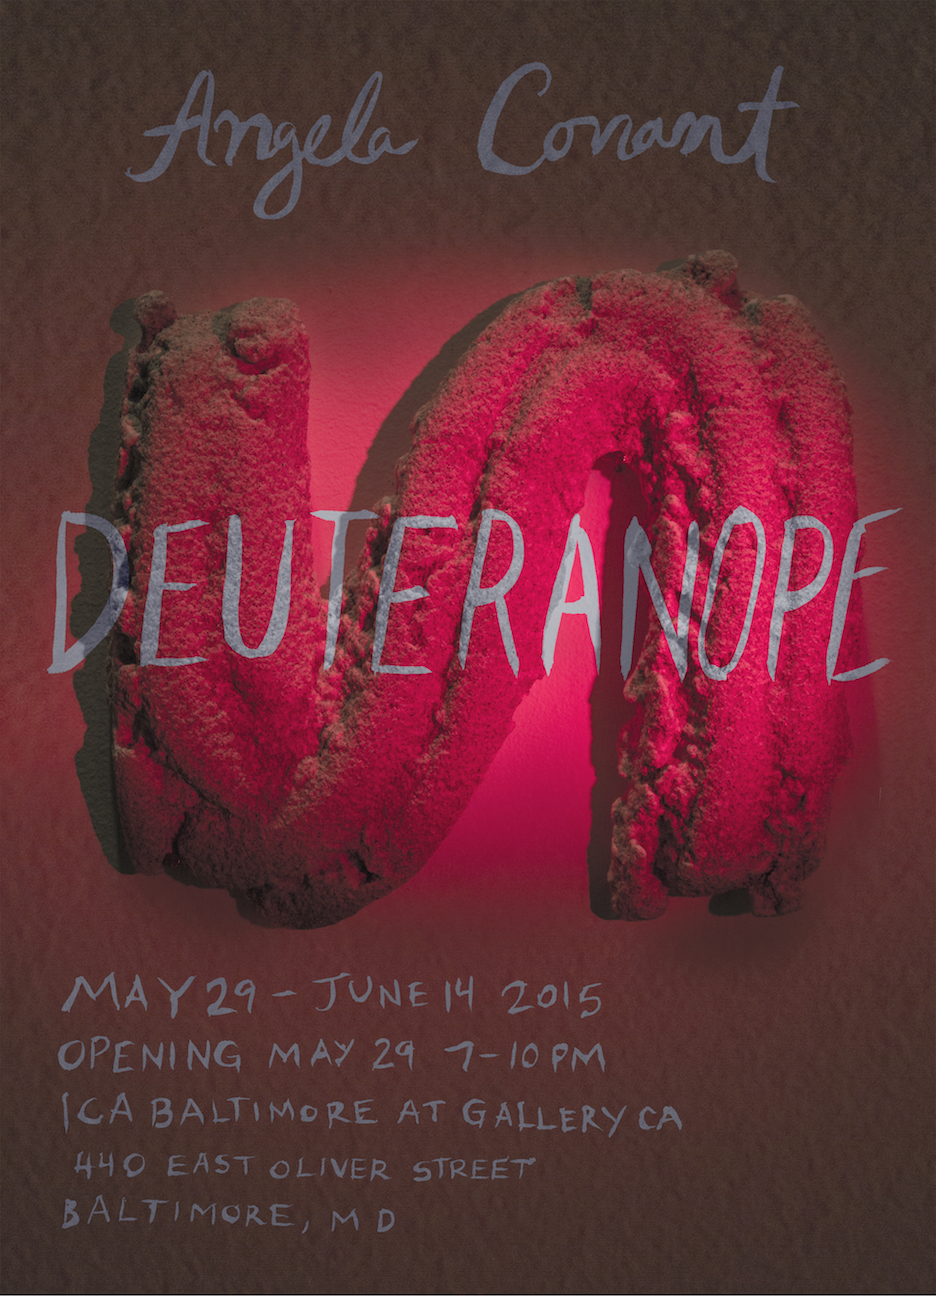 Angela Conant  (MFA AP13) will present Deuteranope, a multi-media exhibition of painting, projection, sculpture, and installation at ICA Baltimore in Gallery CA from May 29th until June 14th 2014. The opening reception will be held on Friday, May 28th from 7-10pm.  Works will be arranged according to their meaning in relationship to dark and light, inner and outer, consciousness and unconsciousness.